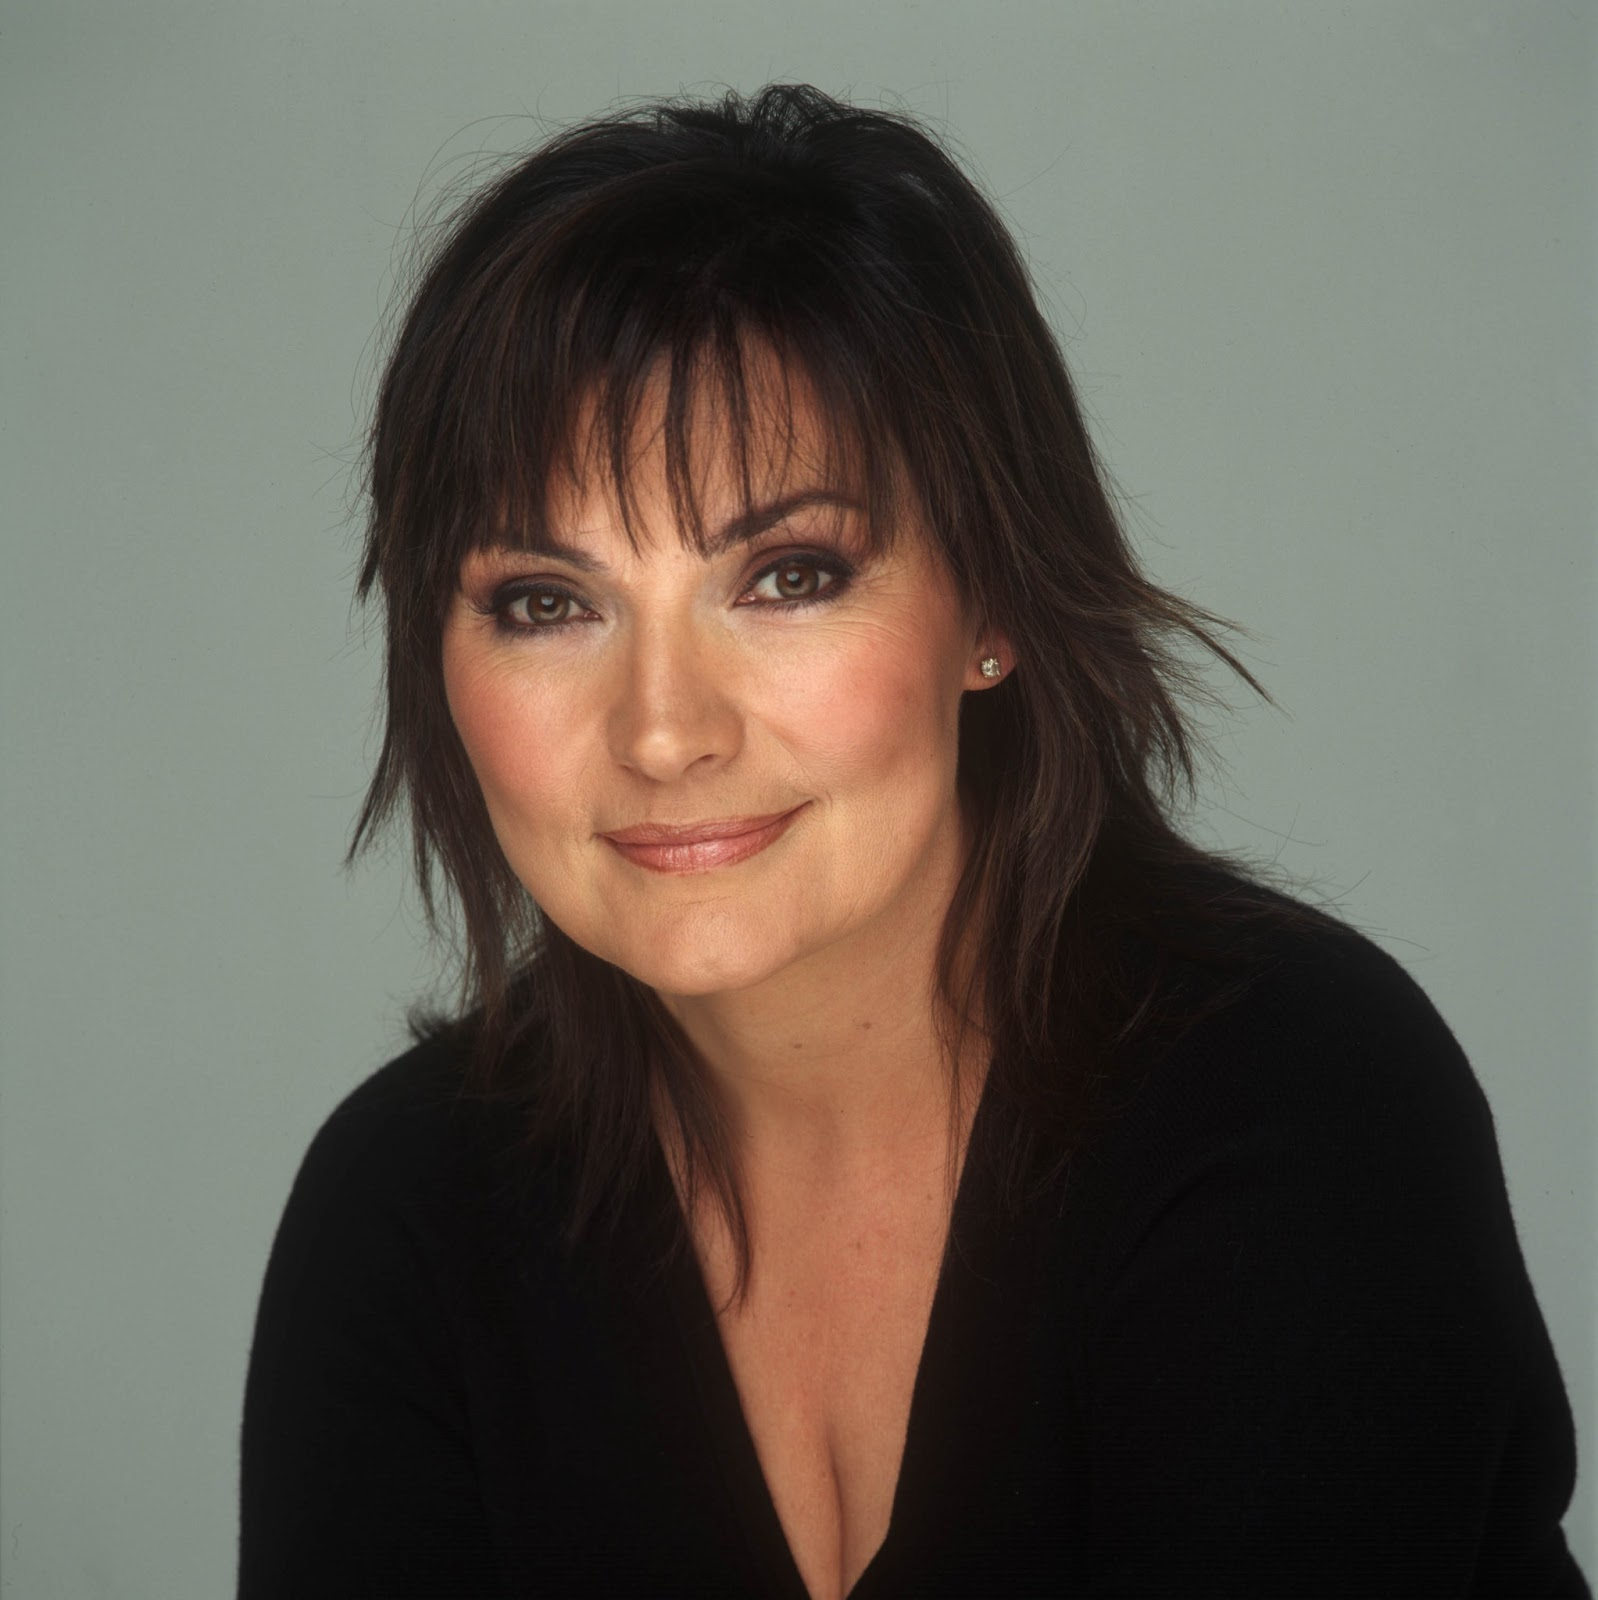 lorraine kelly appreciation society: april 2013